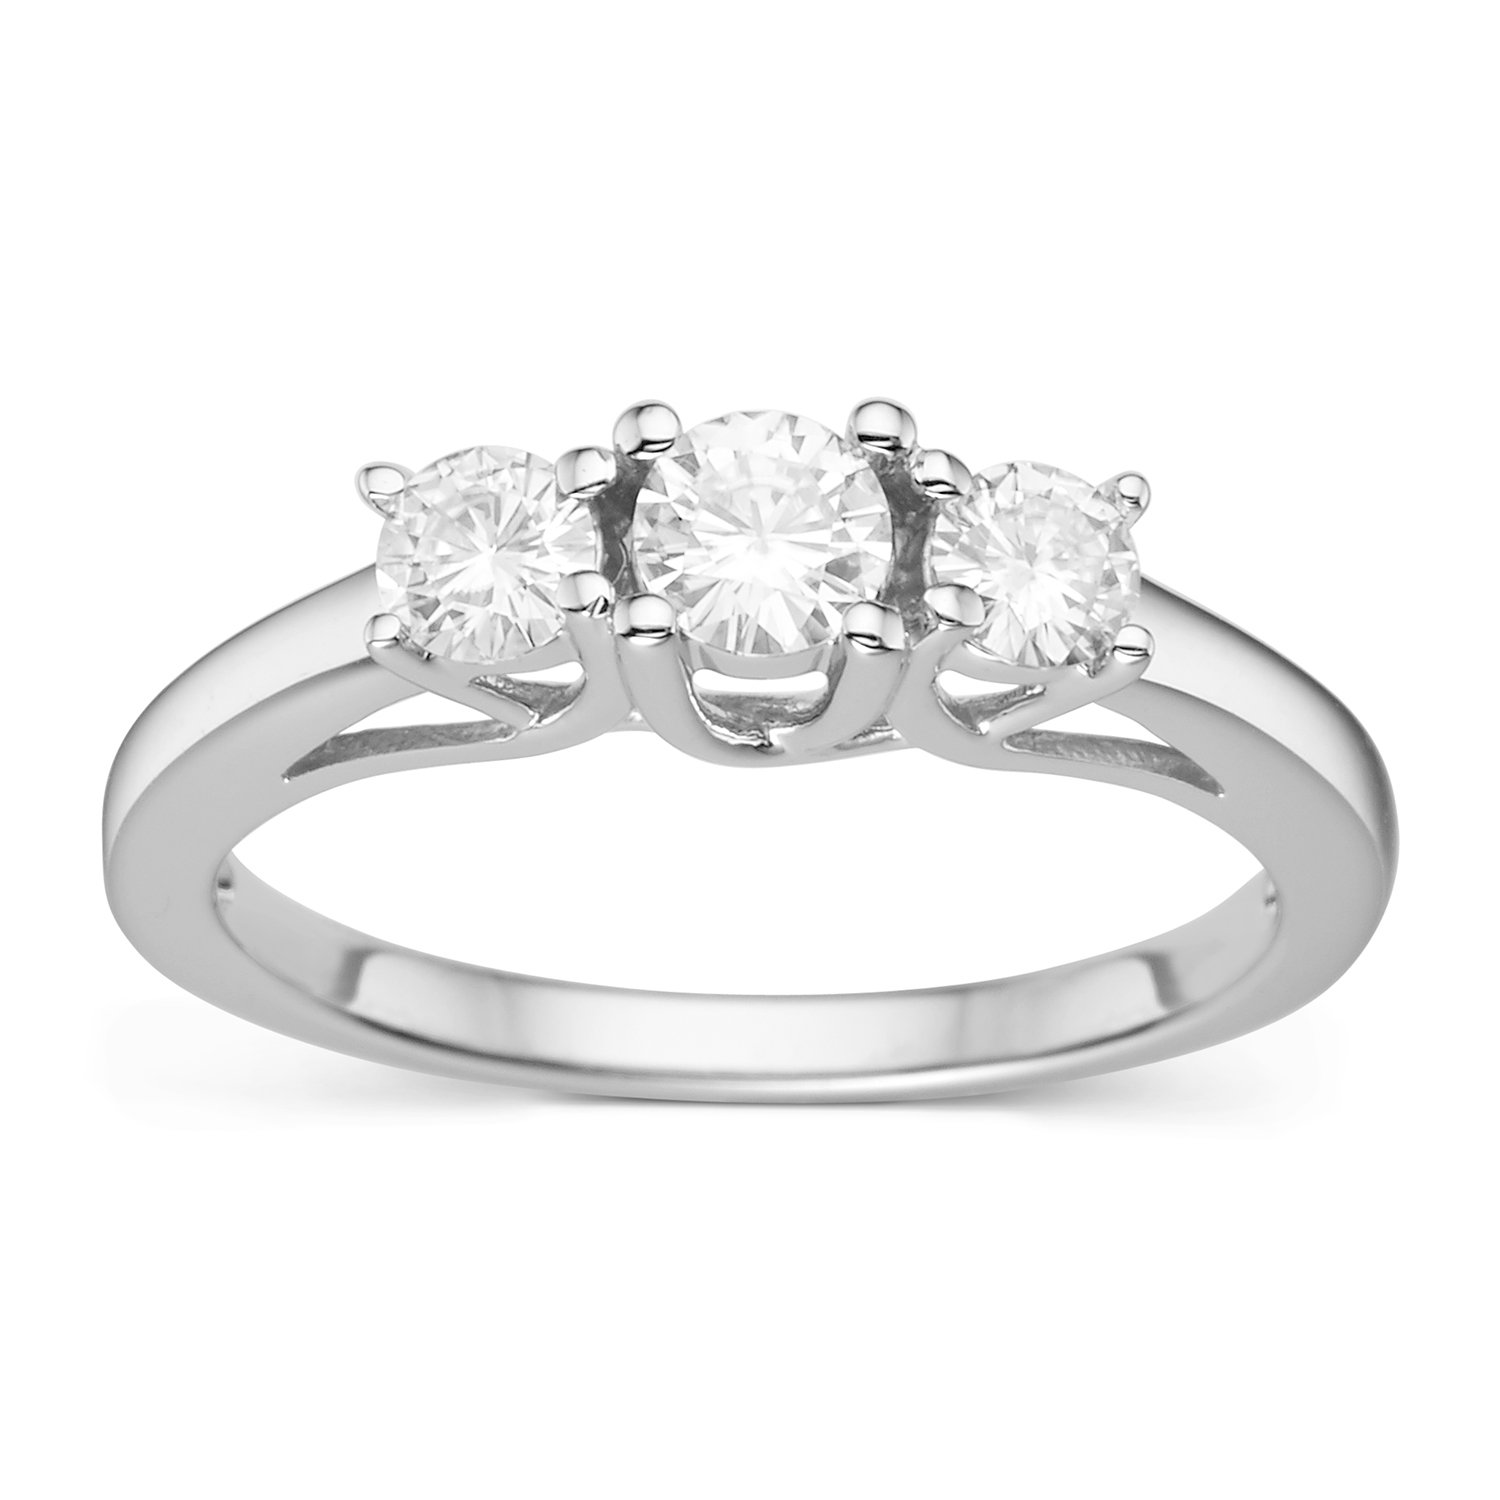 Forever Classic Round Cut 6.0mm Moissanite Engagement Ring-size 7, 1.46cttw DEW By Charles & Colvard